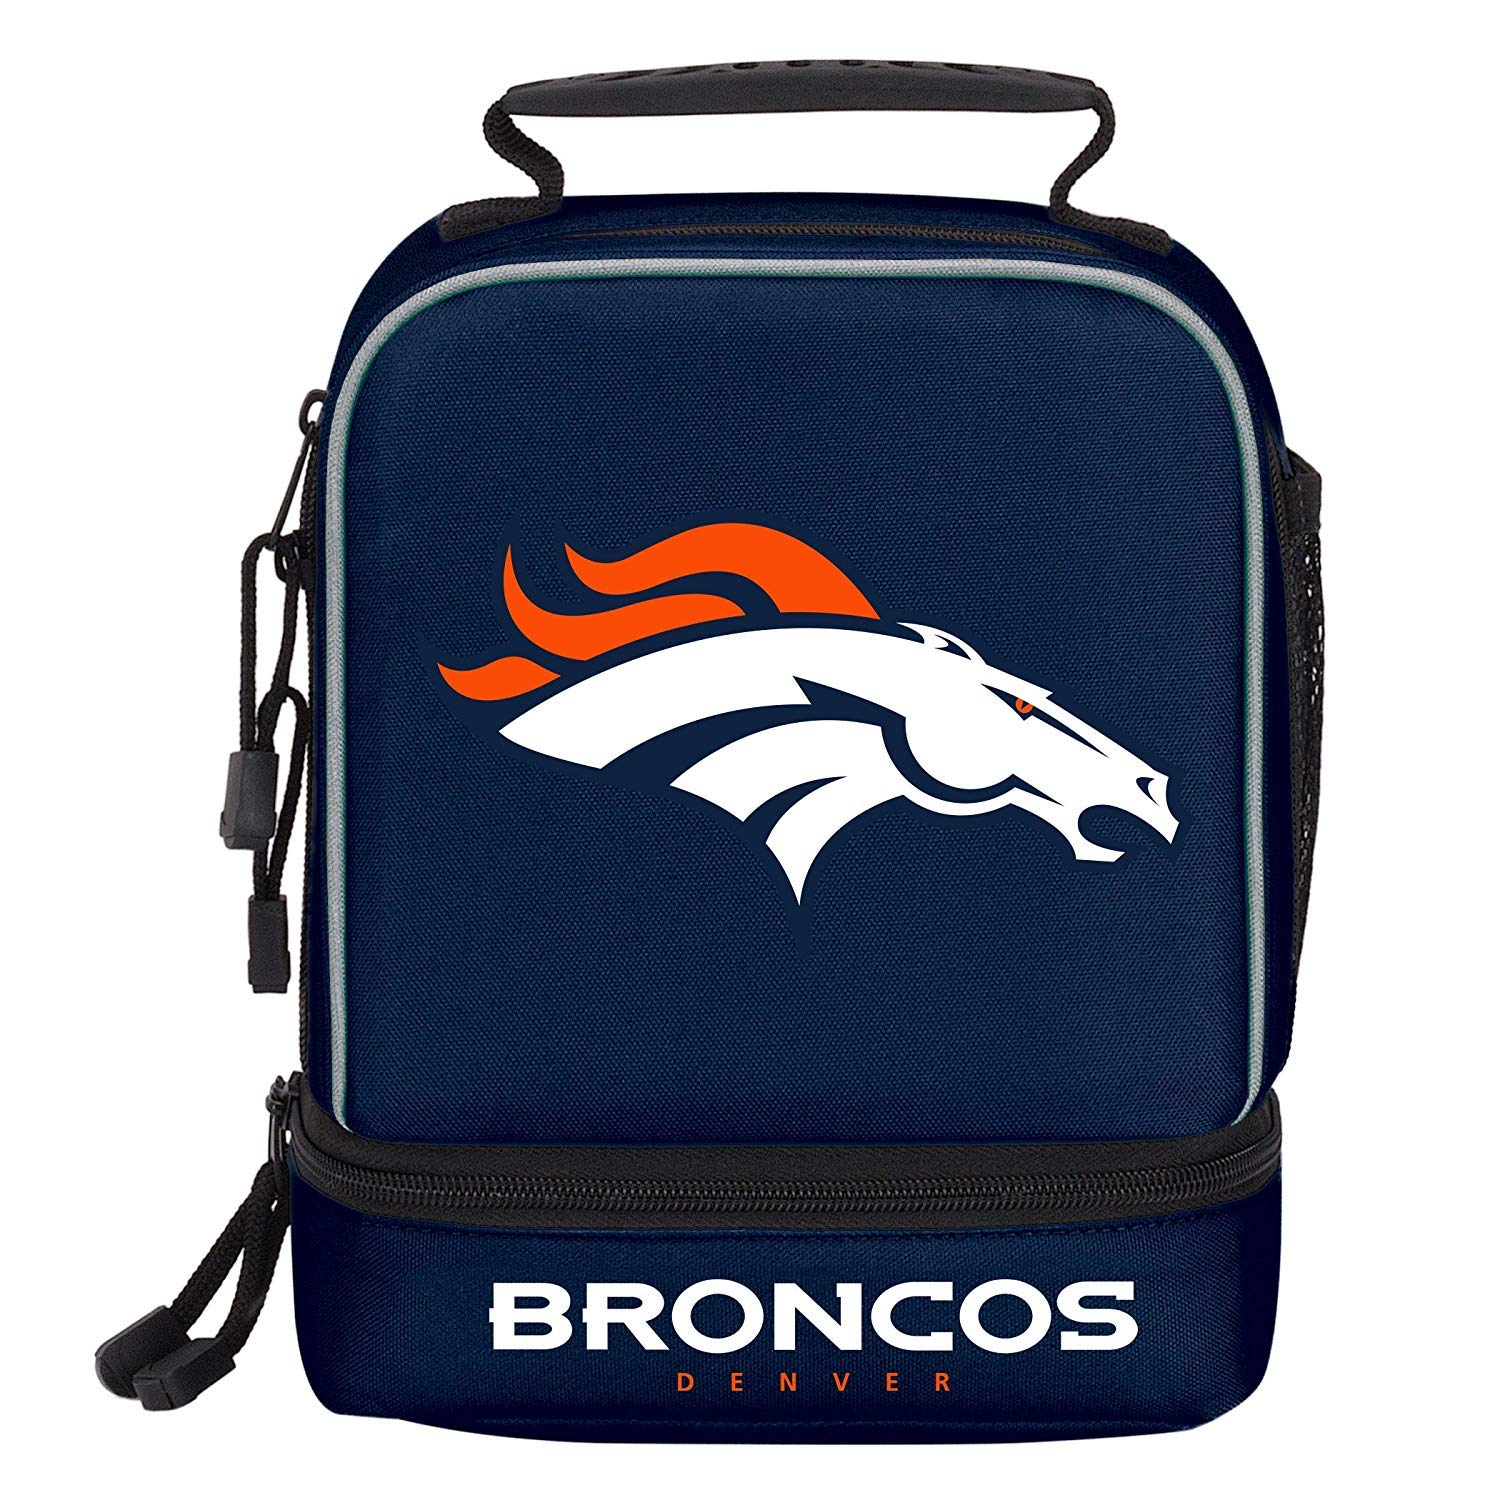 SLW Denver Broncos Insulated Lunch Bag with Zipper and Three Compartments